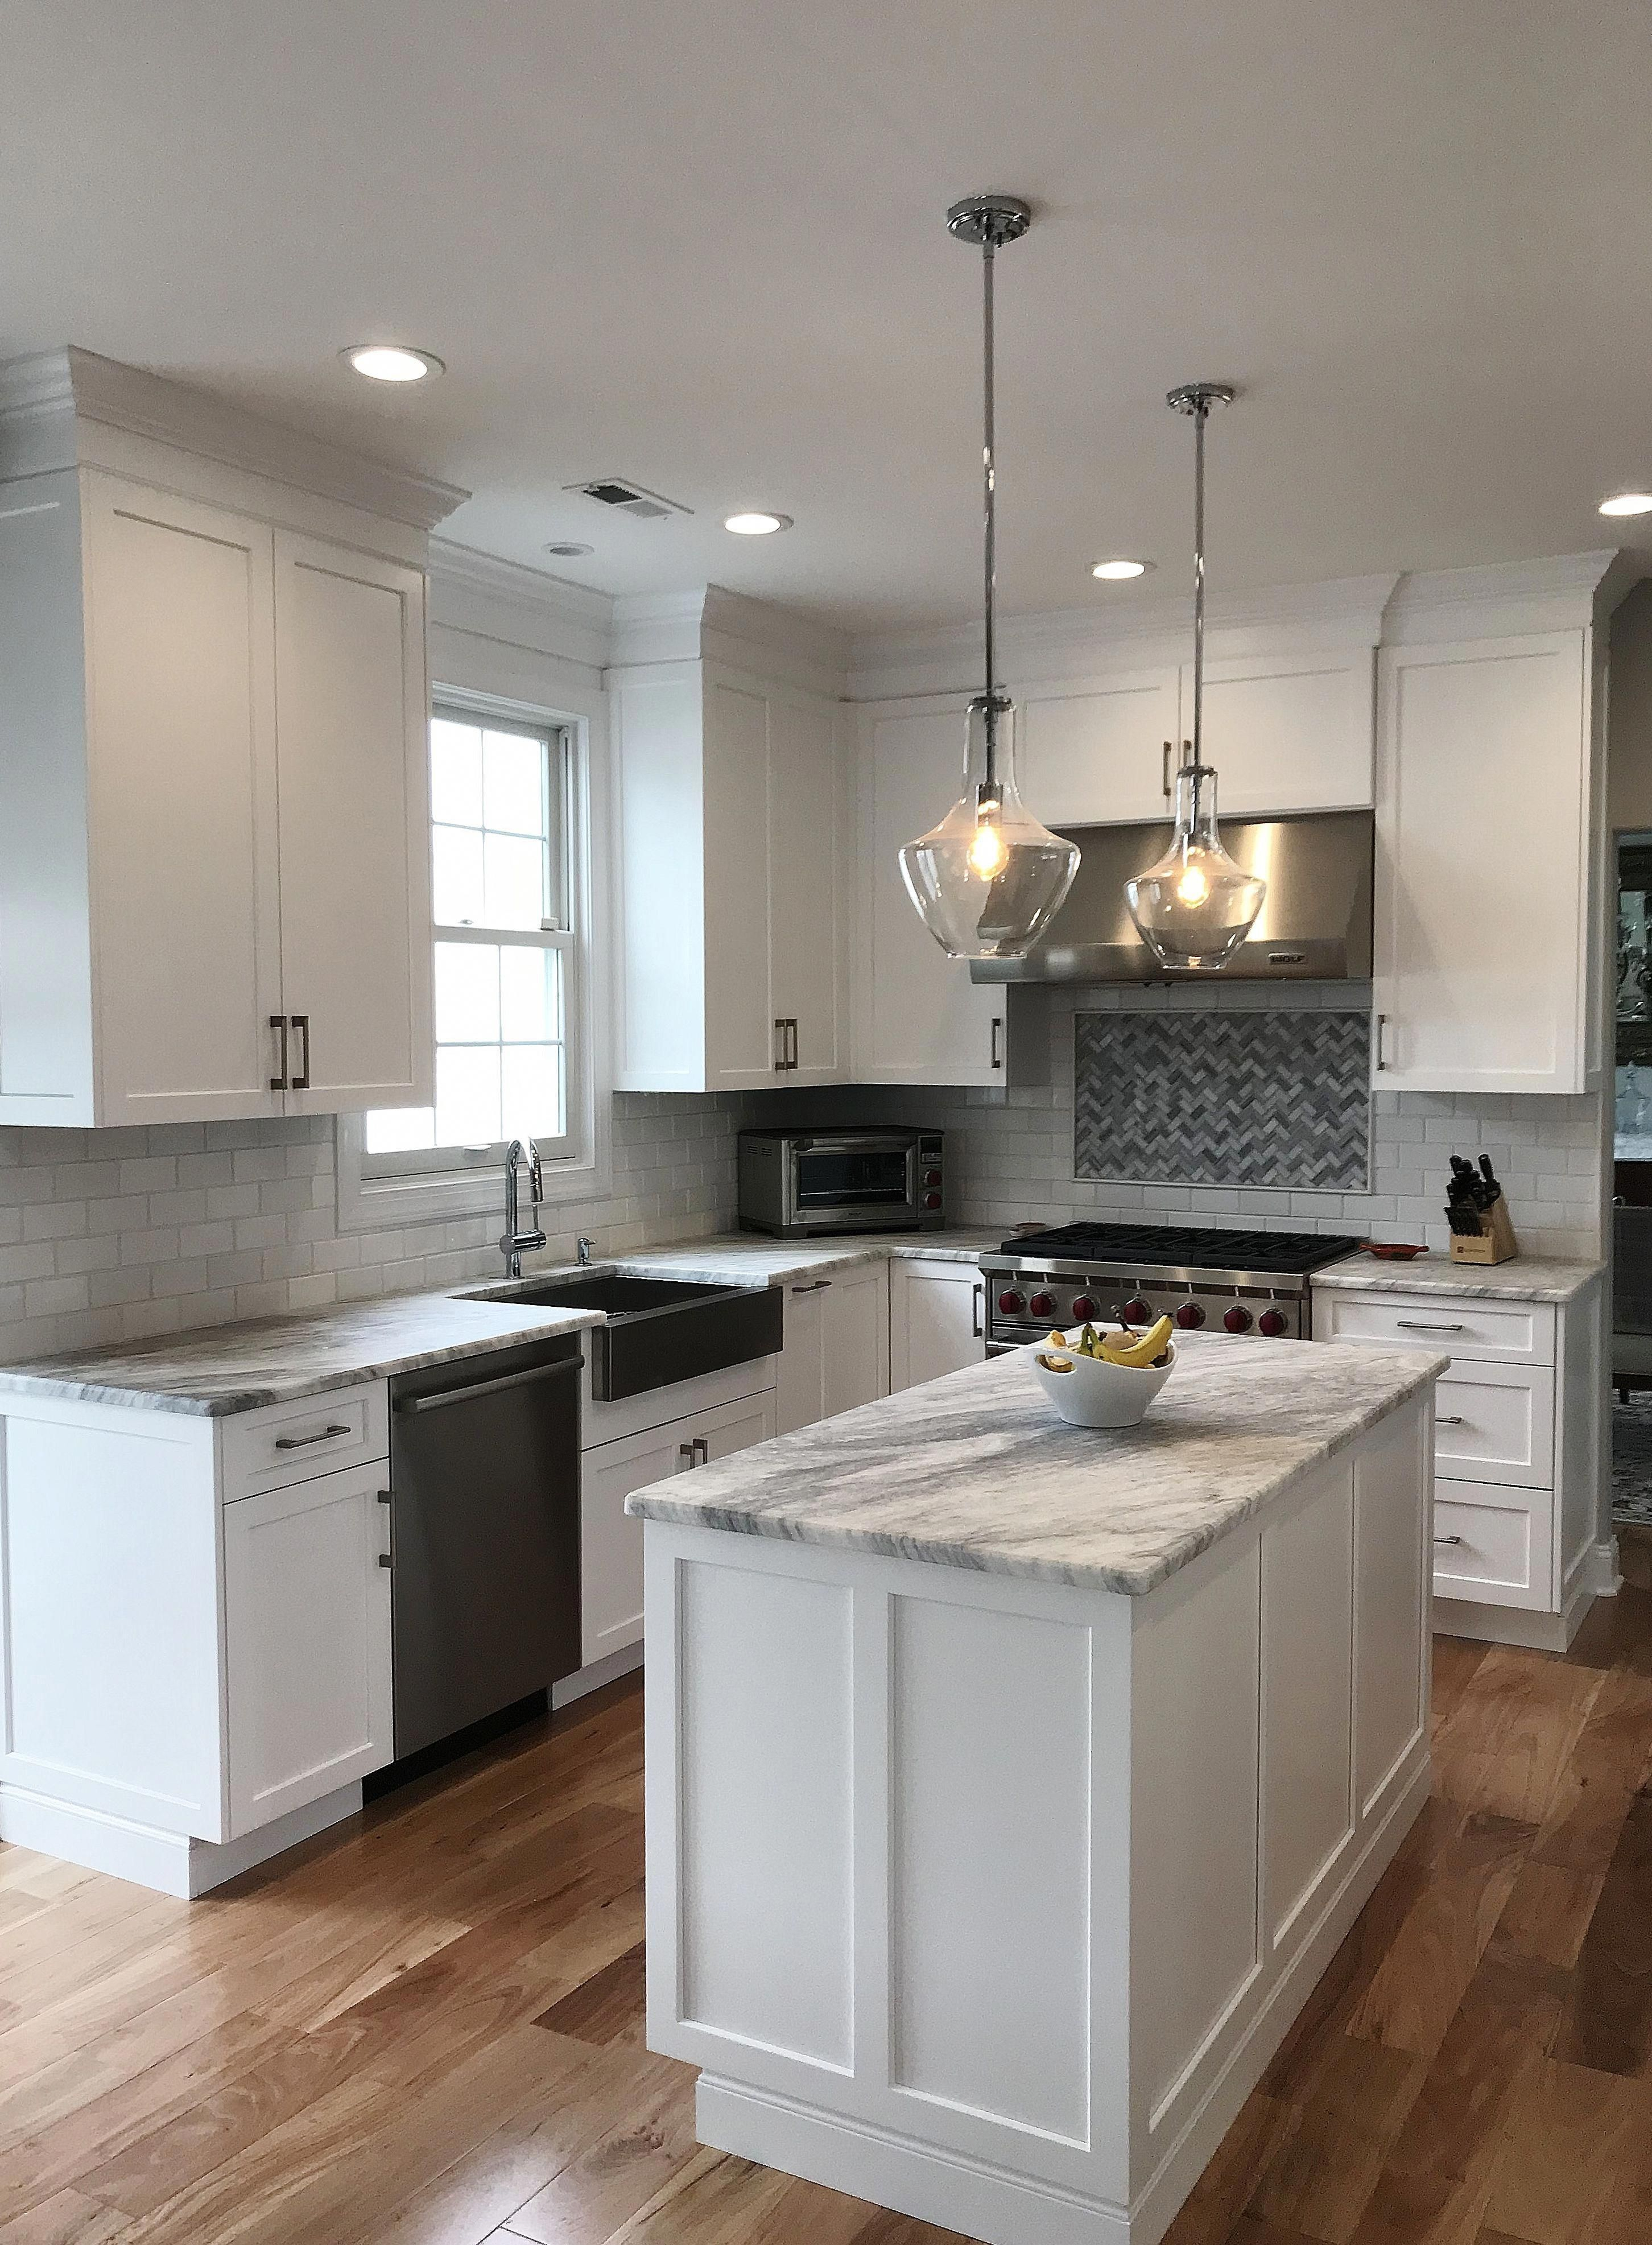 Astounding Diy Ideas Kitchen Remodel Industrial Subway Tiles Ranch Kitchen Remodel Concrete Counter Classy Kitchen White Kitchen Design Kitchen Remodel Small